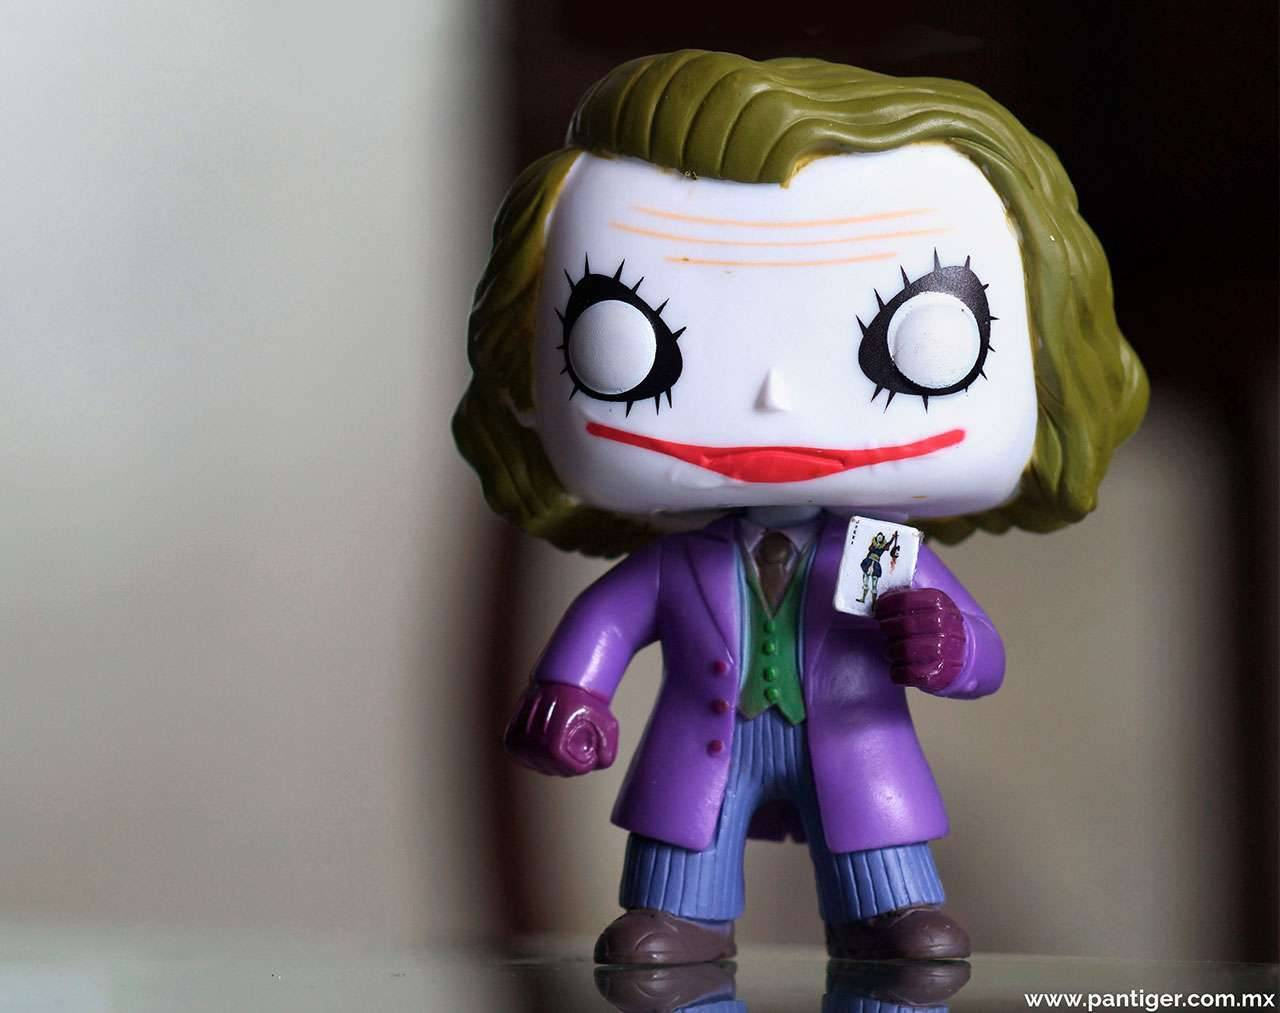 The Joker (Heath Ledger) Pop! Vinyl